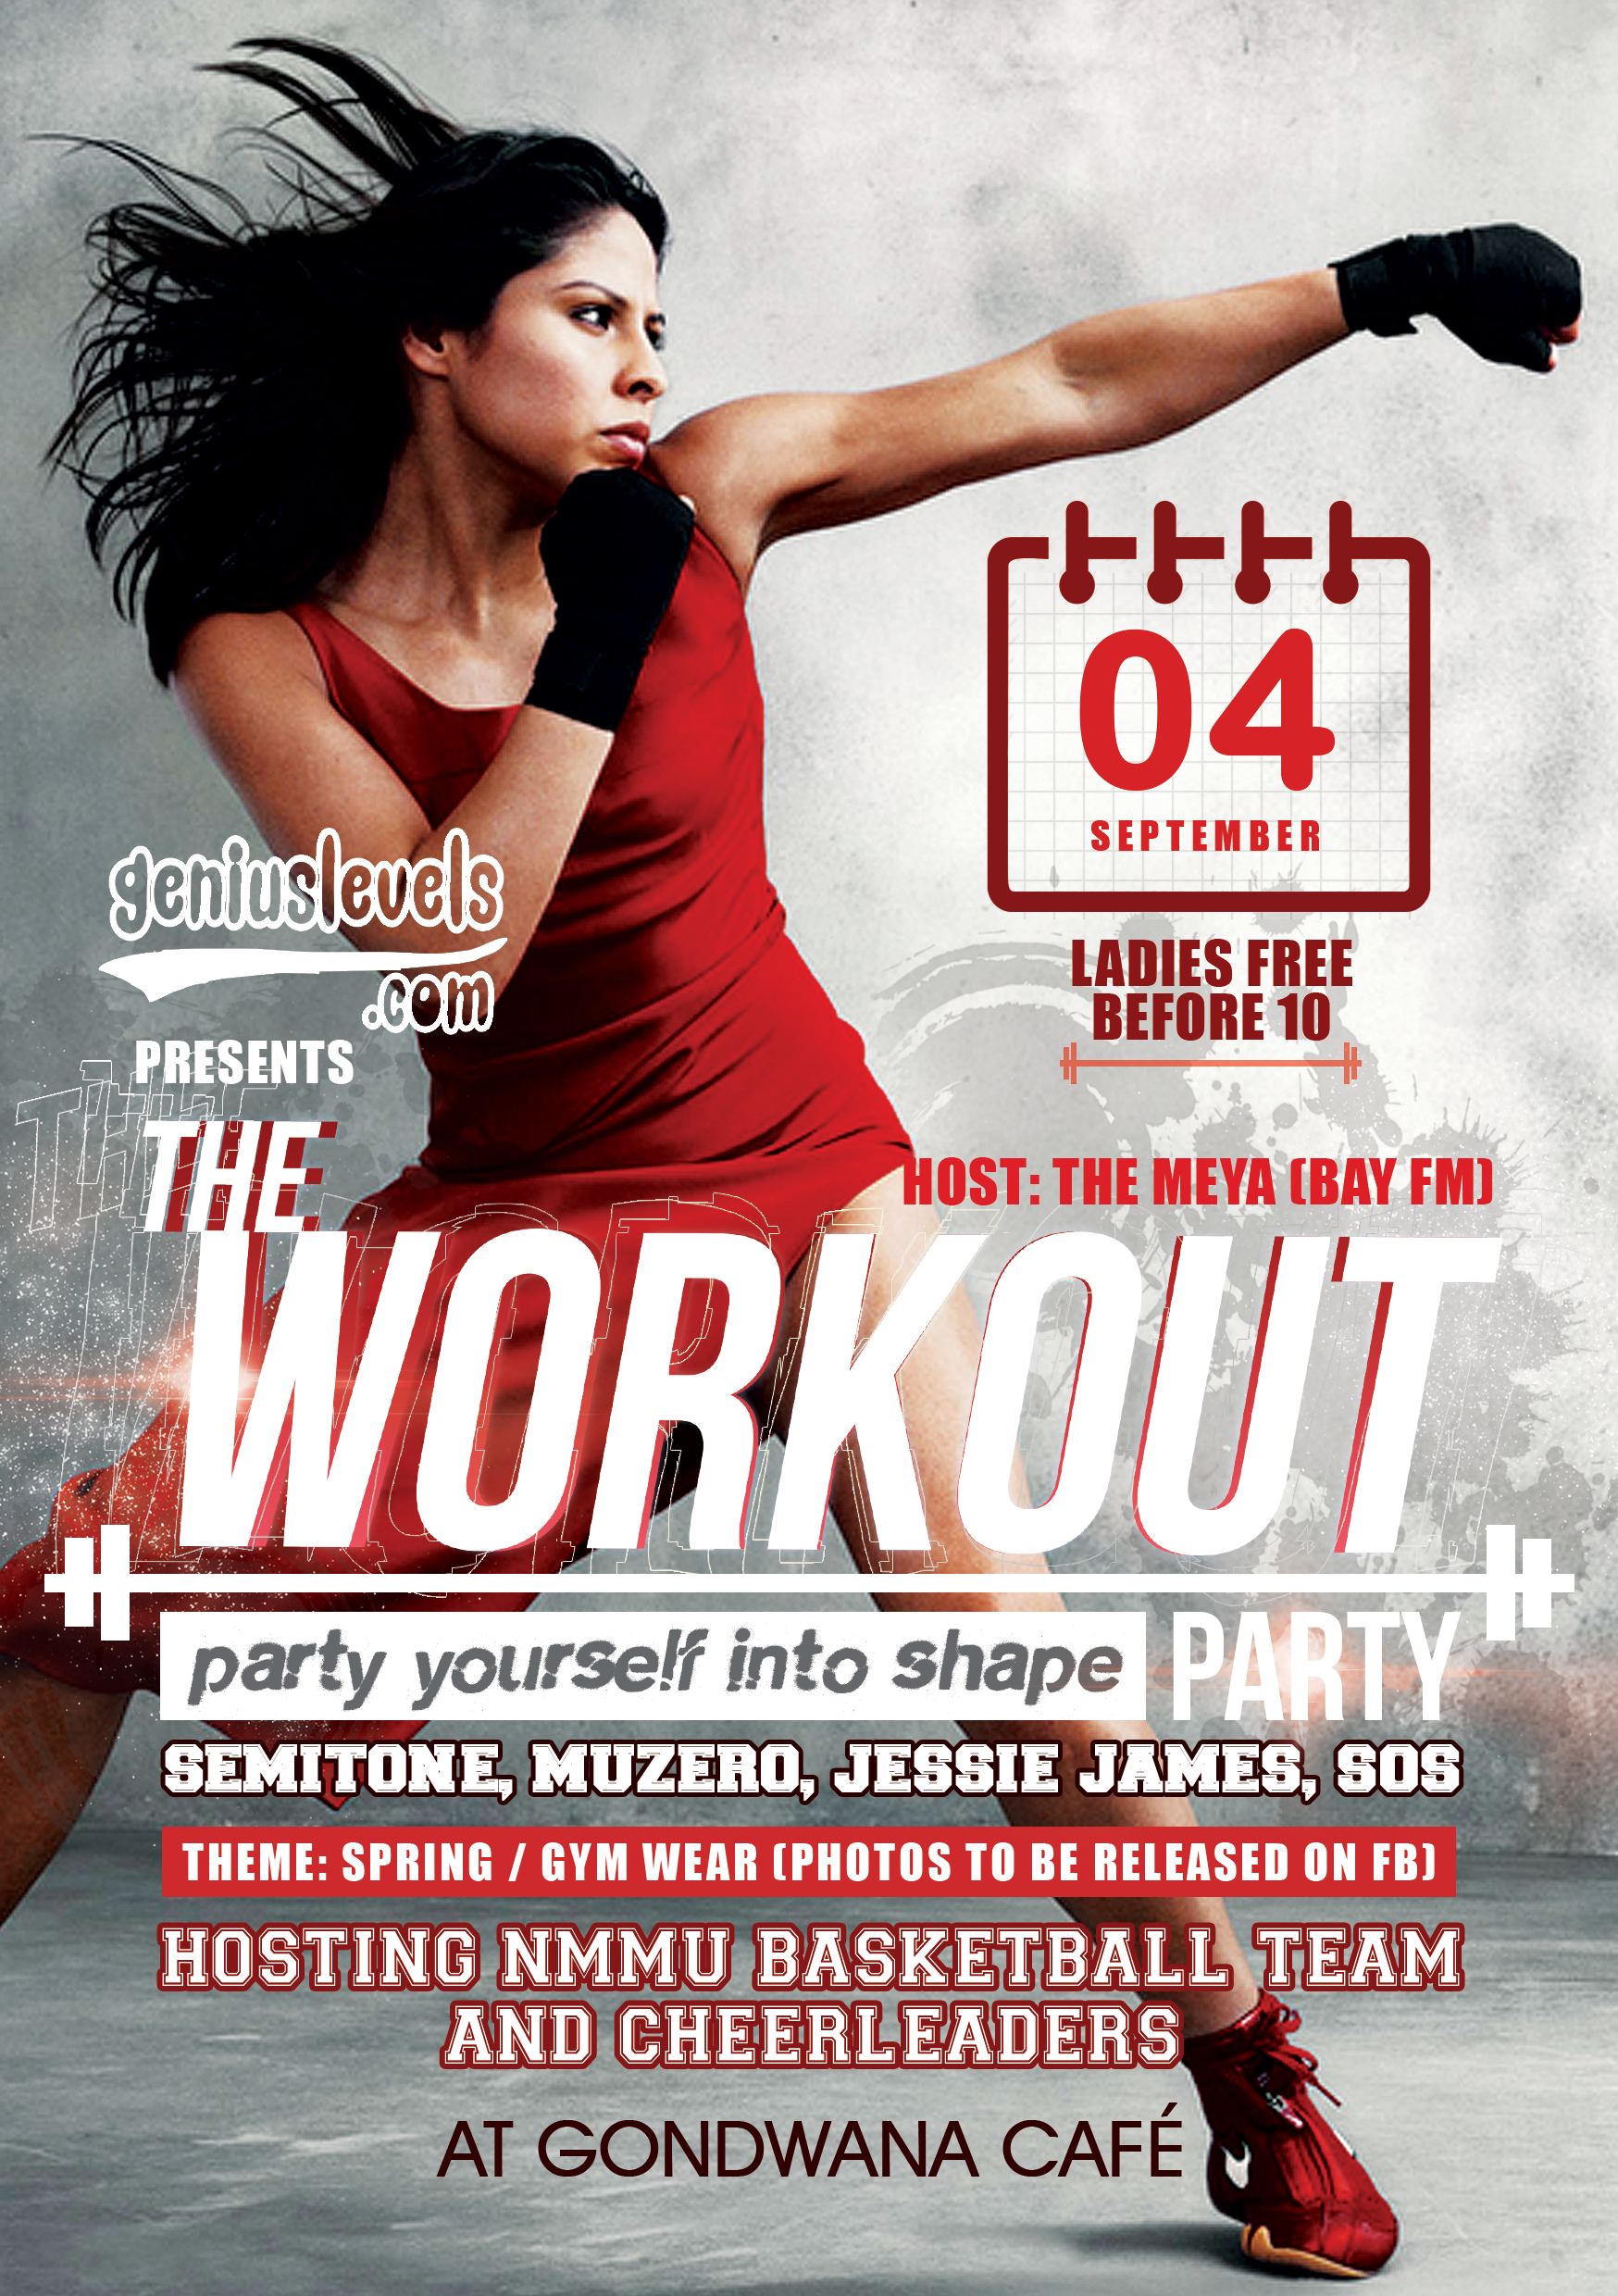 the workout party   come  u0026 39 party yourself into shape u0026 39  with